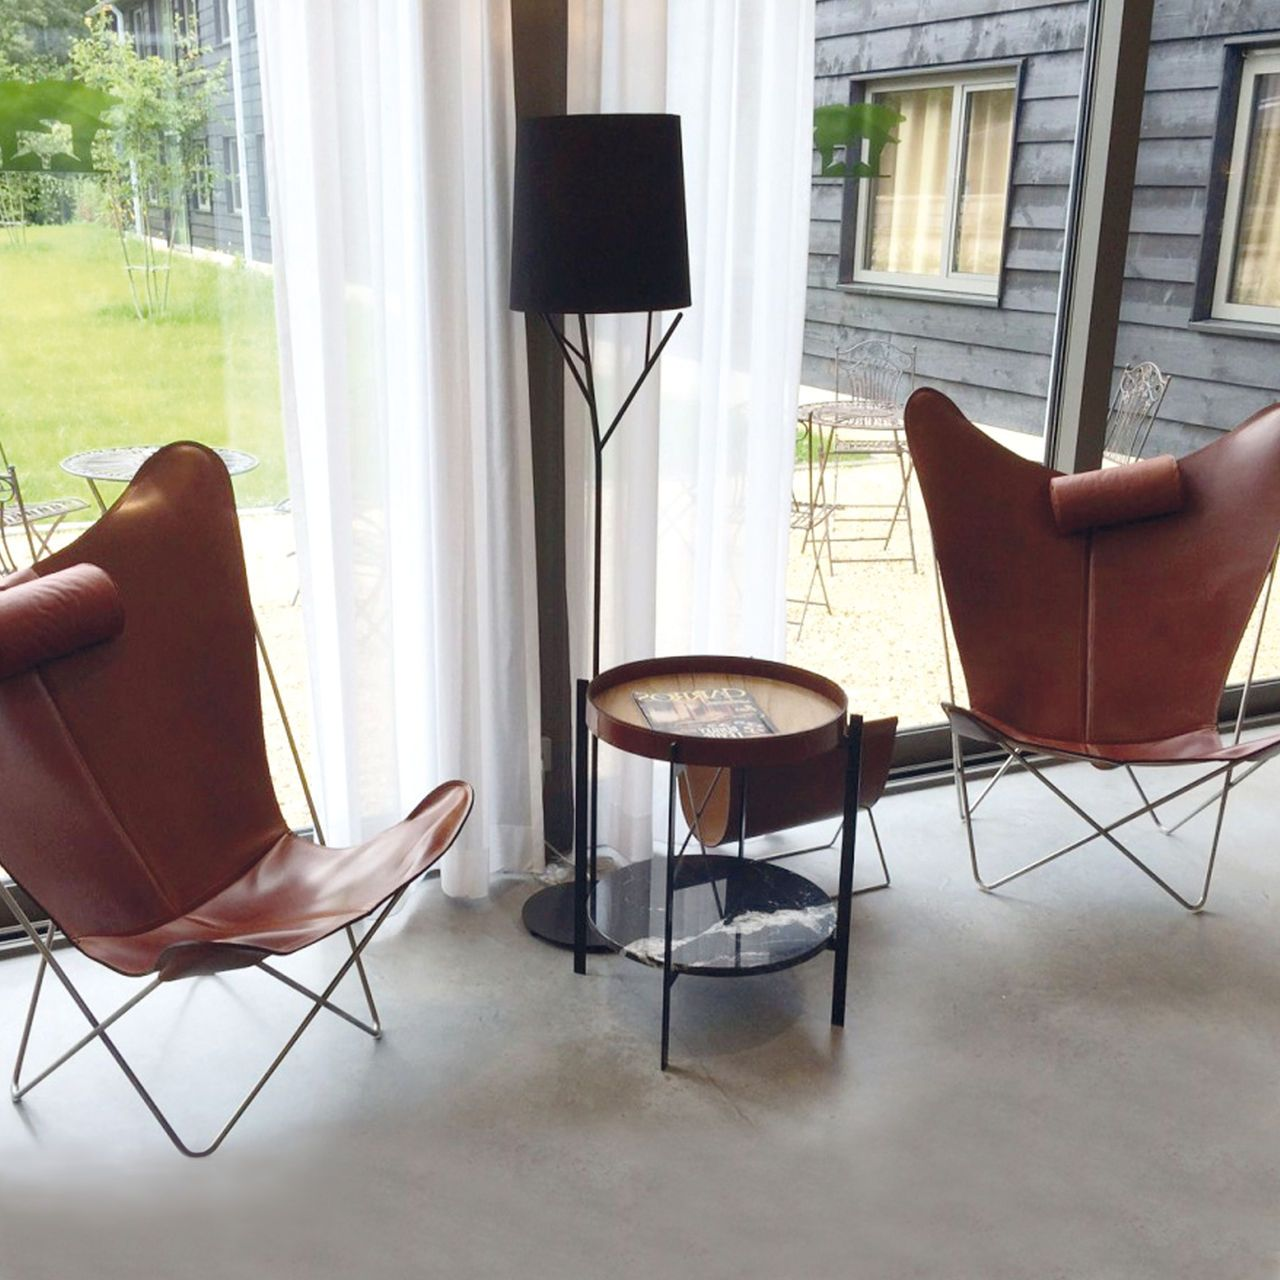 Marvelous Design Stühle Trifolium U0026 KS: Purer Relax Luxus: Dänische Design Stühle Photo